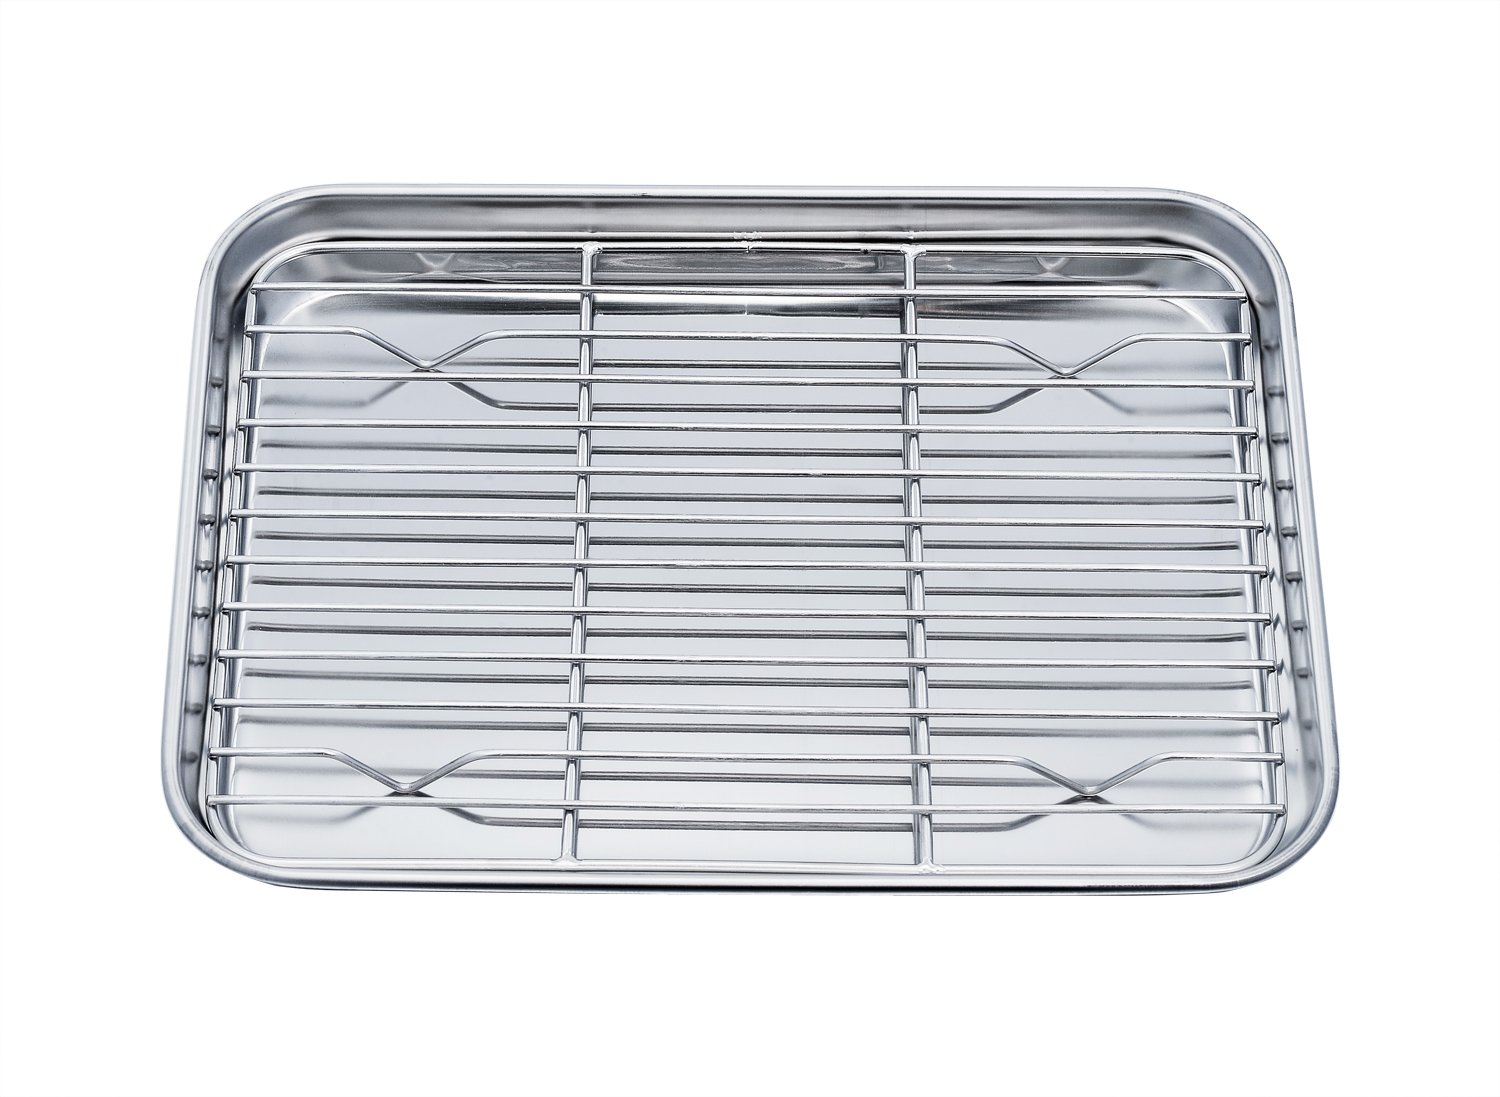 TeamFar Toaster Oven Pan Tray with Cooling Rack, Stainless Steel Toaster Ovenware broiler Pan,